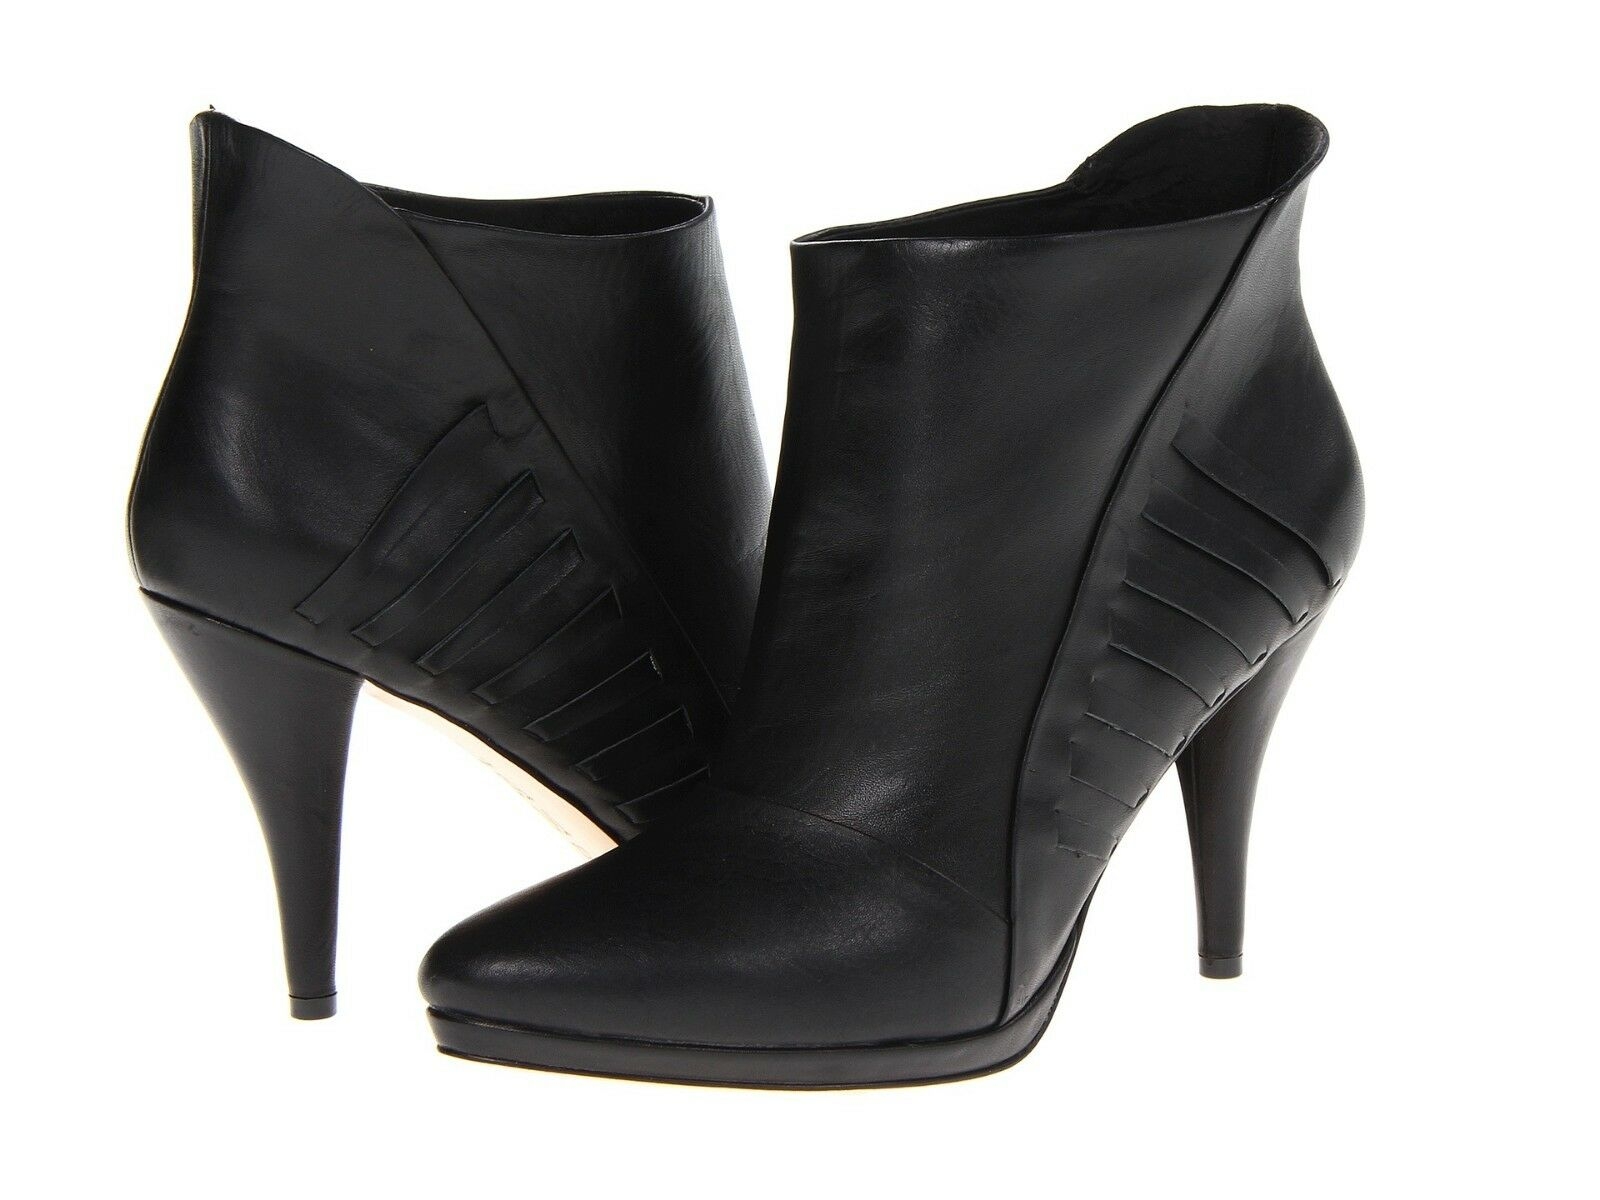 L.A.M.B. Nyla Black Woven Leather Ankle Boots Size 8